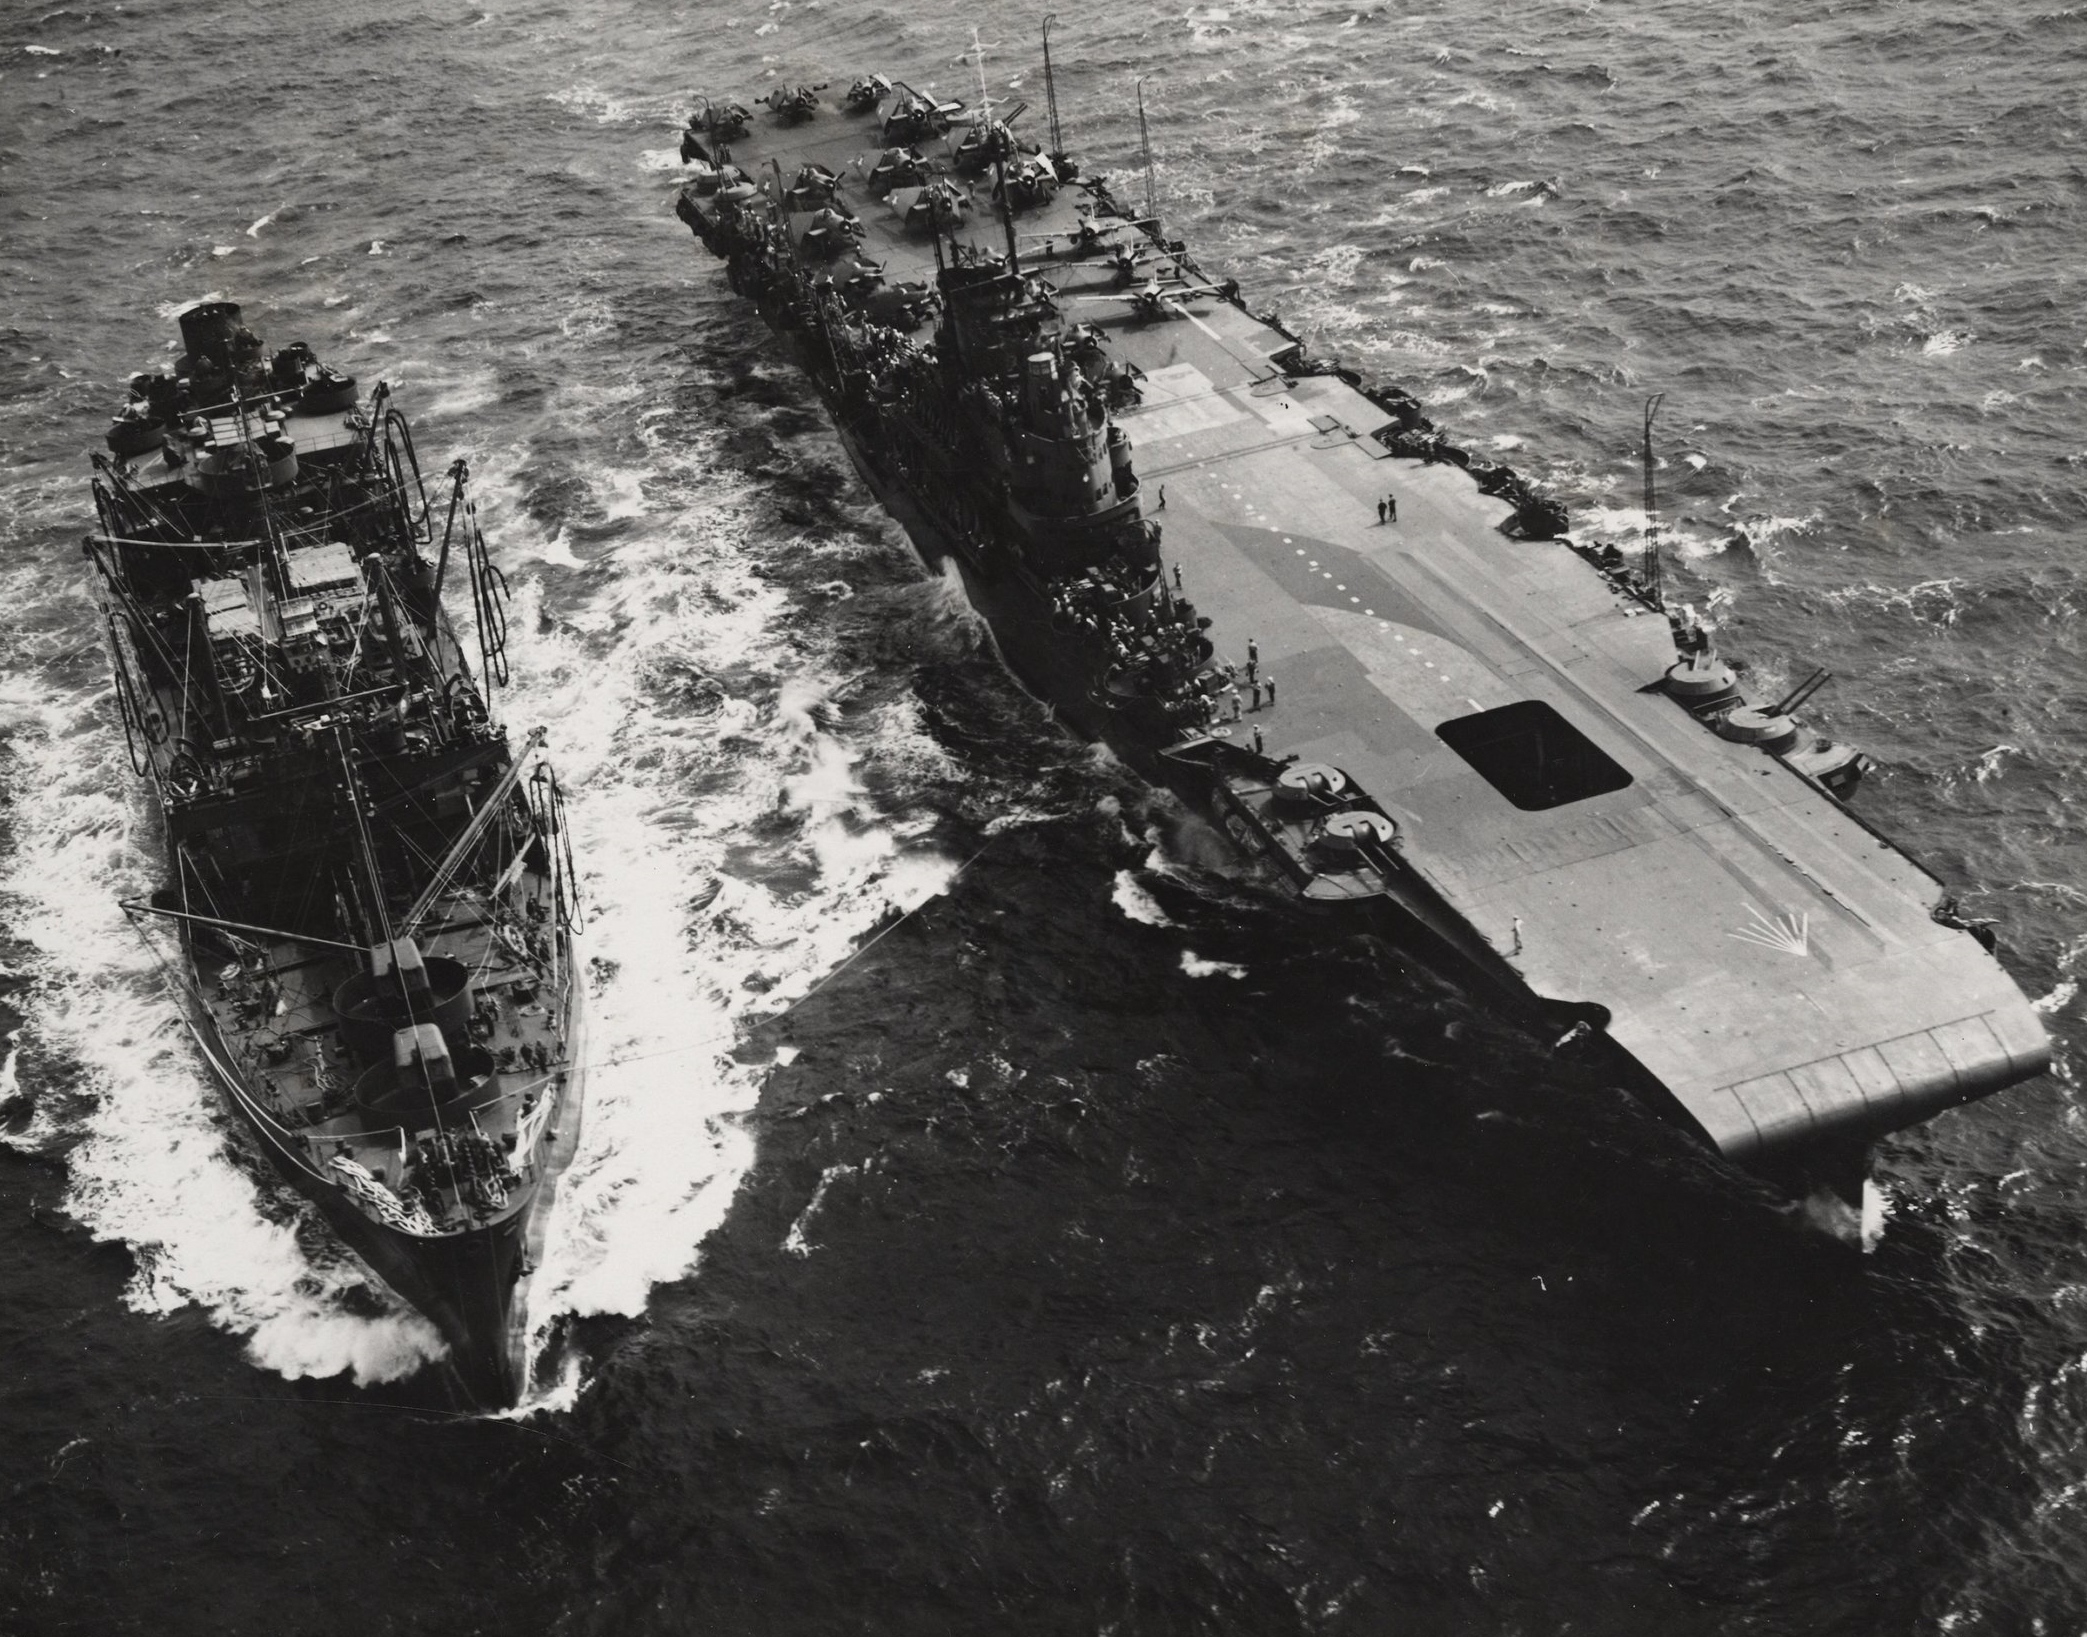 USS CIMARRON refuels USS ROBIN (HMS VICTORIOUS) on July 12, 1943.